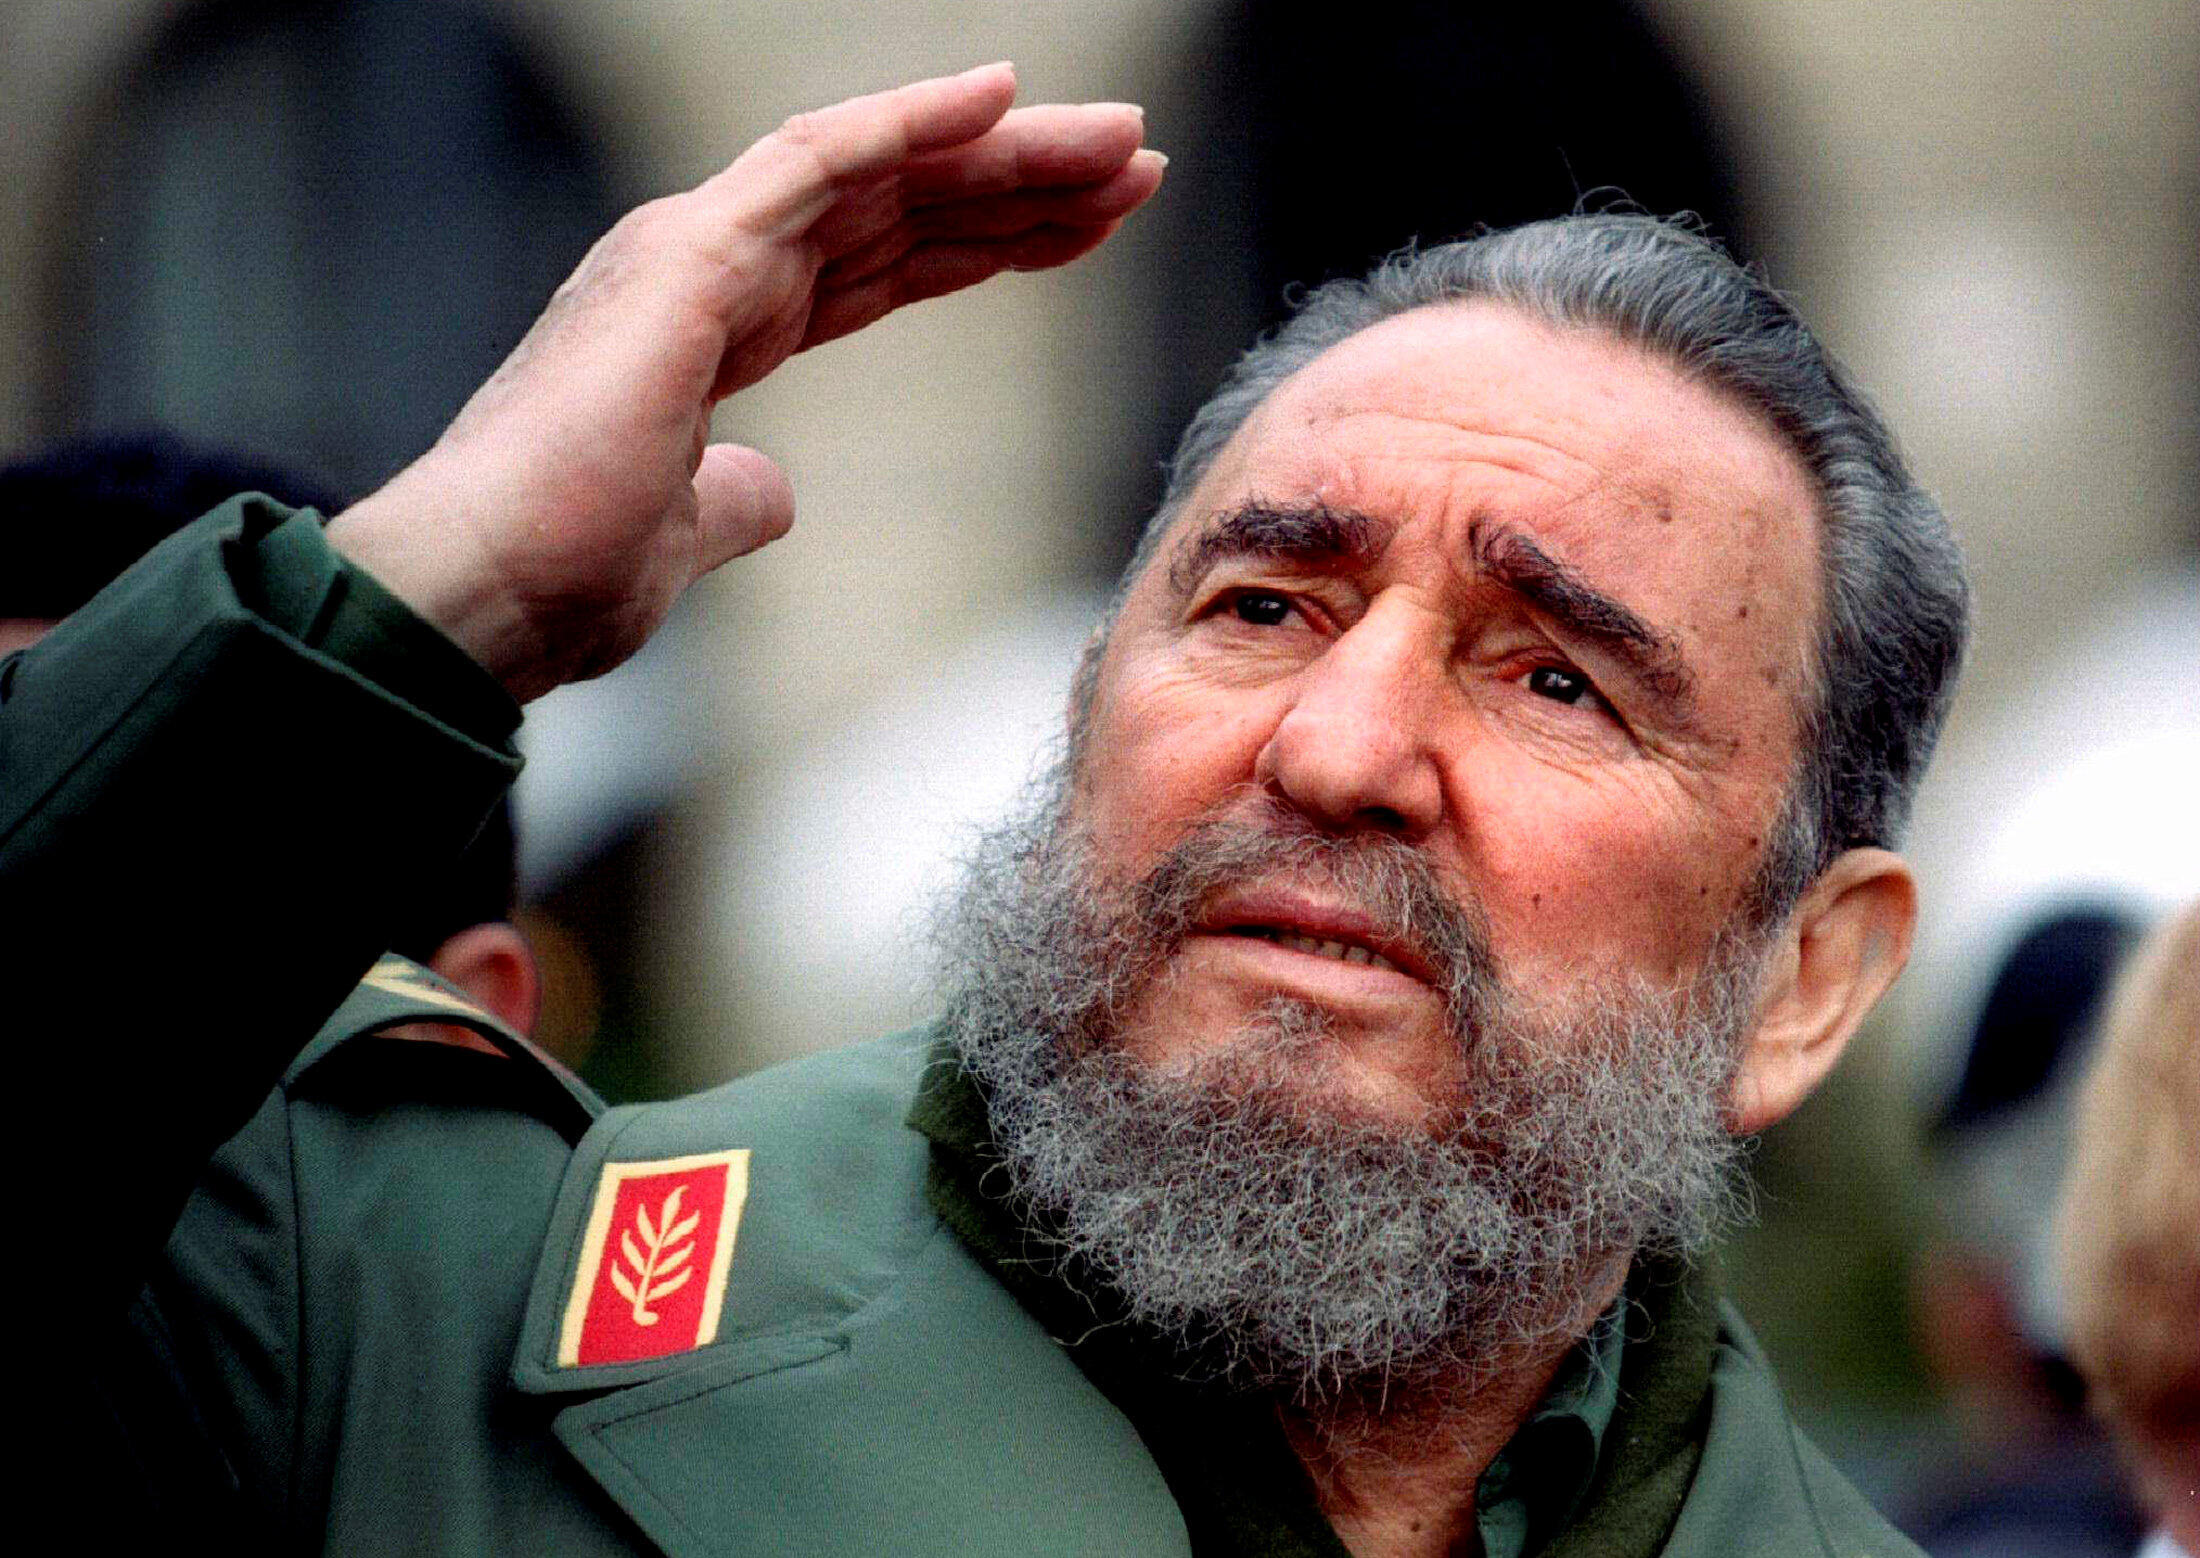 Fidel Castro, brother of Raoul, pictured here when he made a stopover in Paris on 15 March 1995.